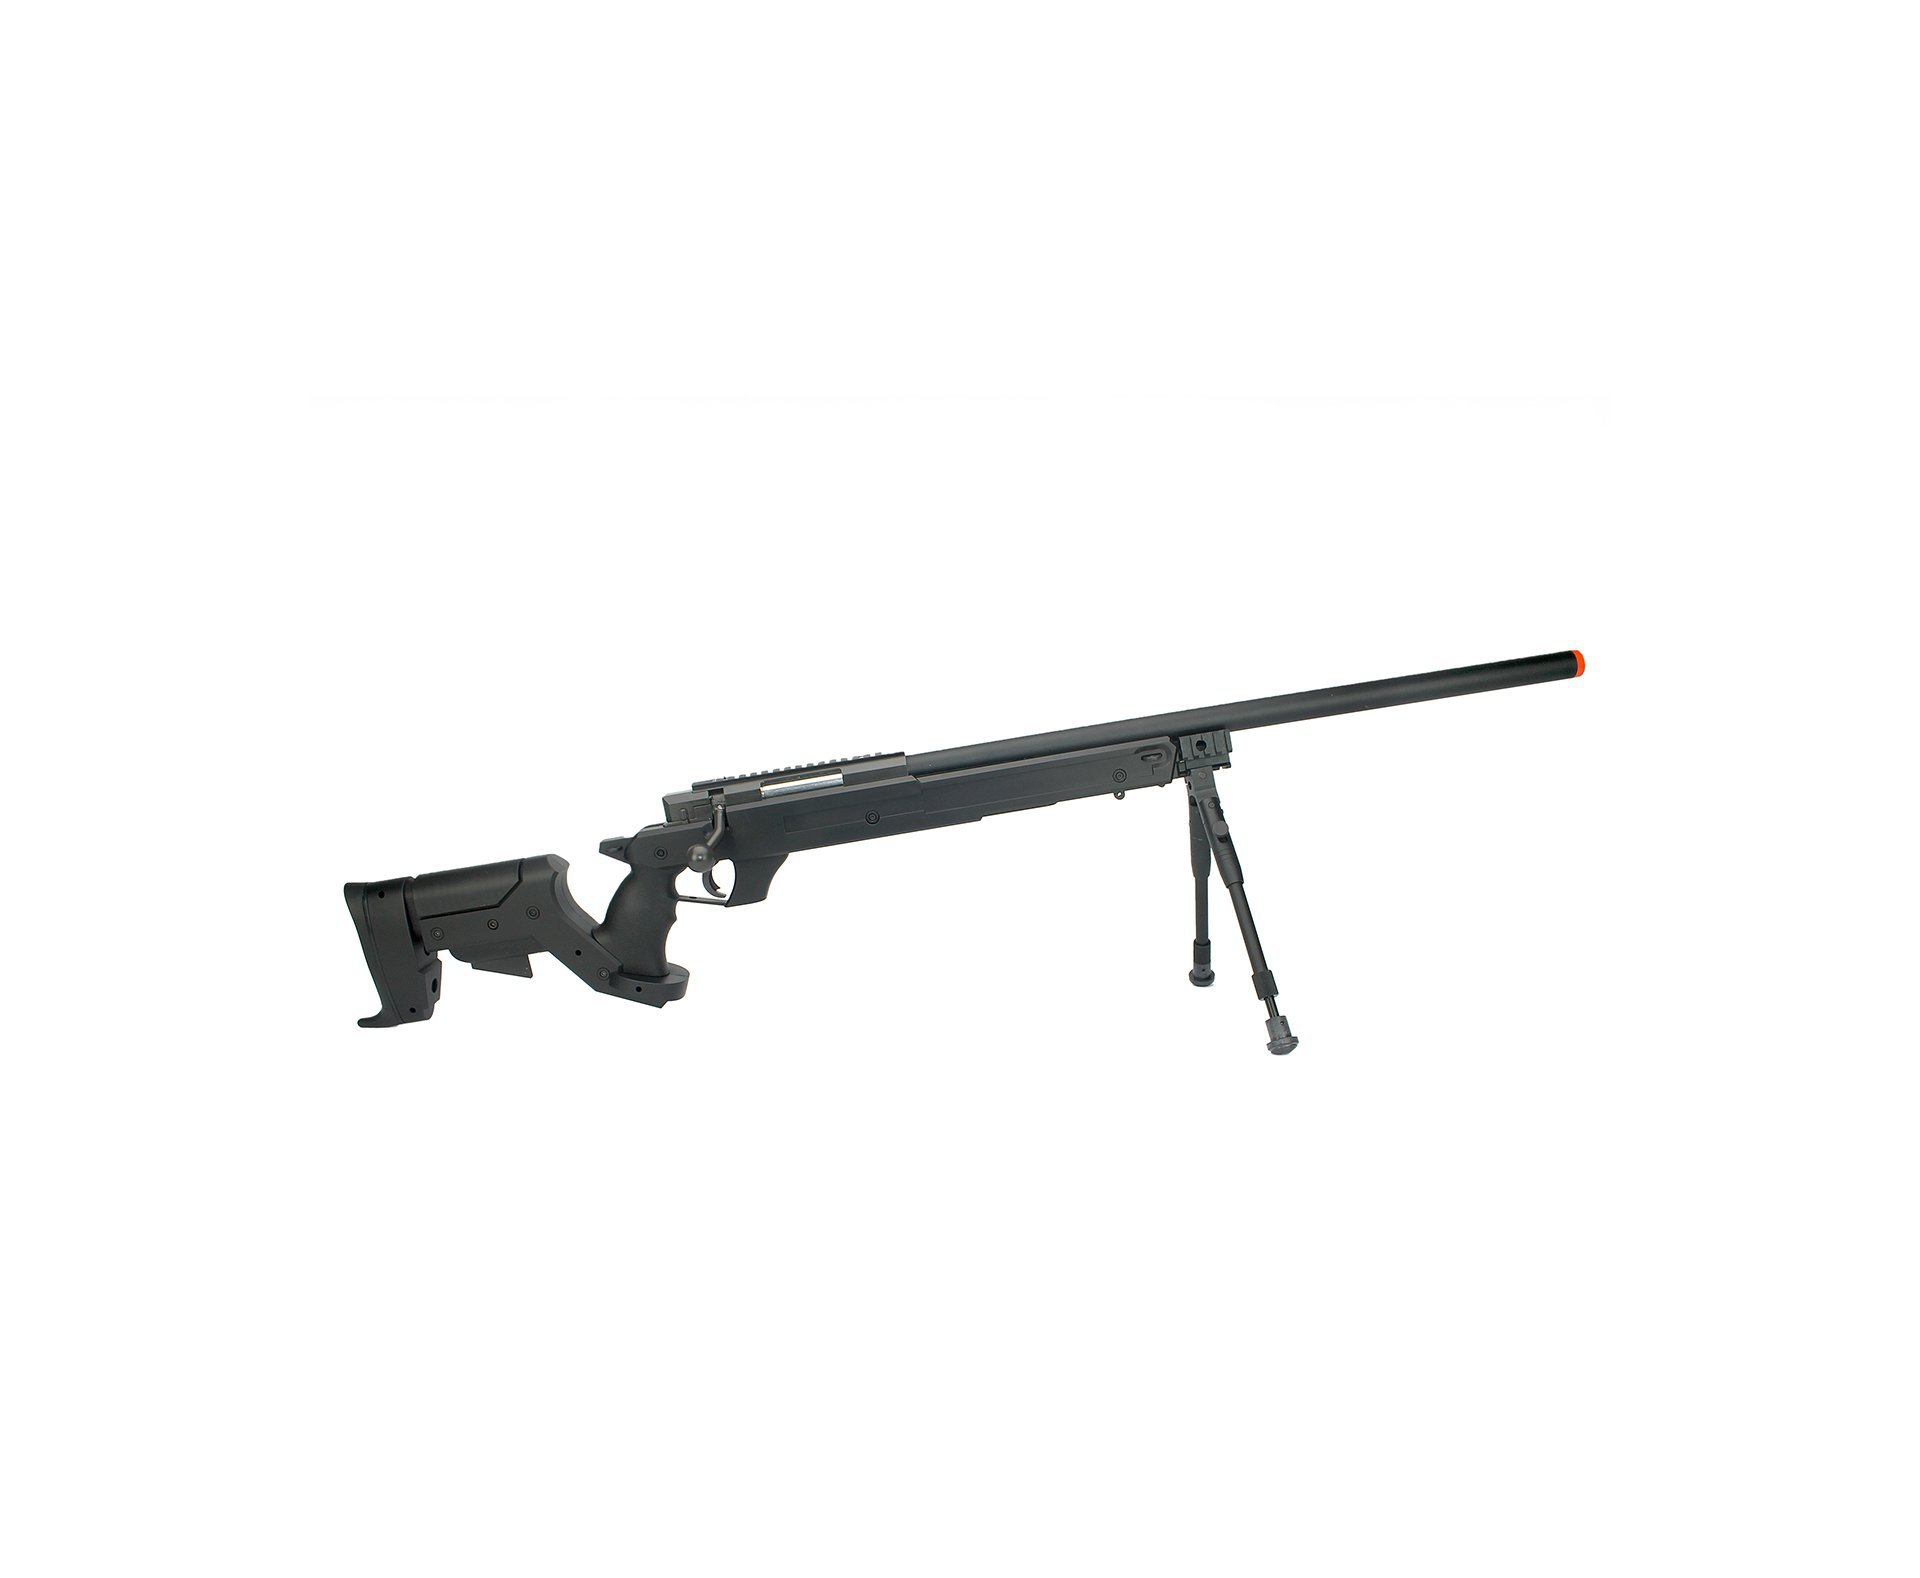 Rifle Sniper De Airsoft Gás Gbb G22b Com Bipé Cal 6.0mm Well